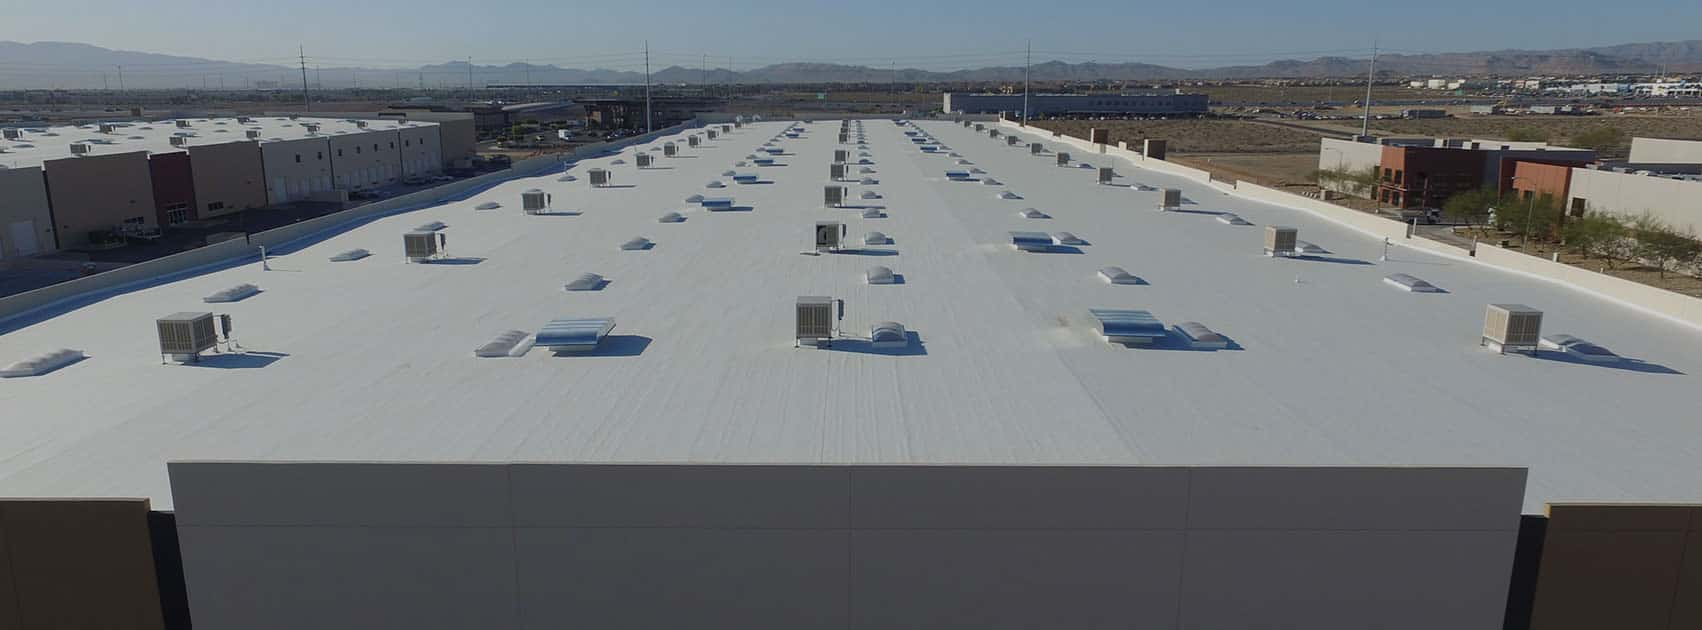 original-roofing-company-commercial-roofing-min